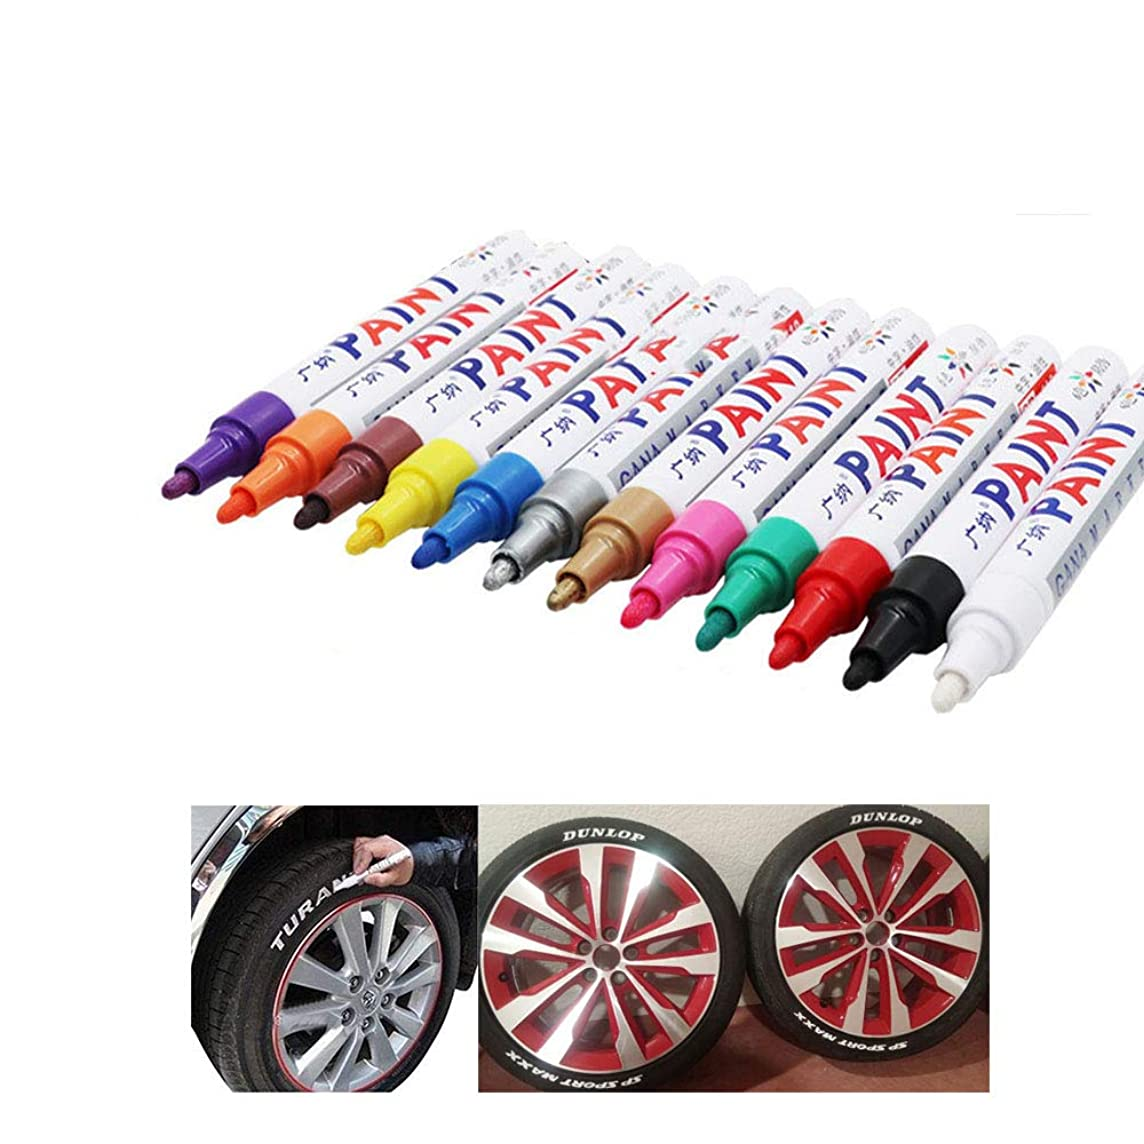 12 Pieces Waterproof Tire Pen Tire Marker Car, CD Metal Permanent Color Marker Motorcycle Bicycle Tire Tire Marker Pen Kicking Marker Pen Fills Scratches